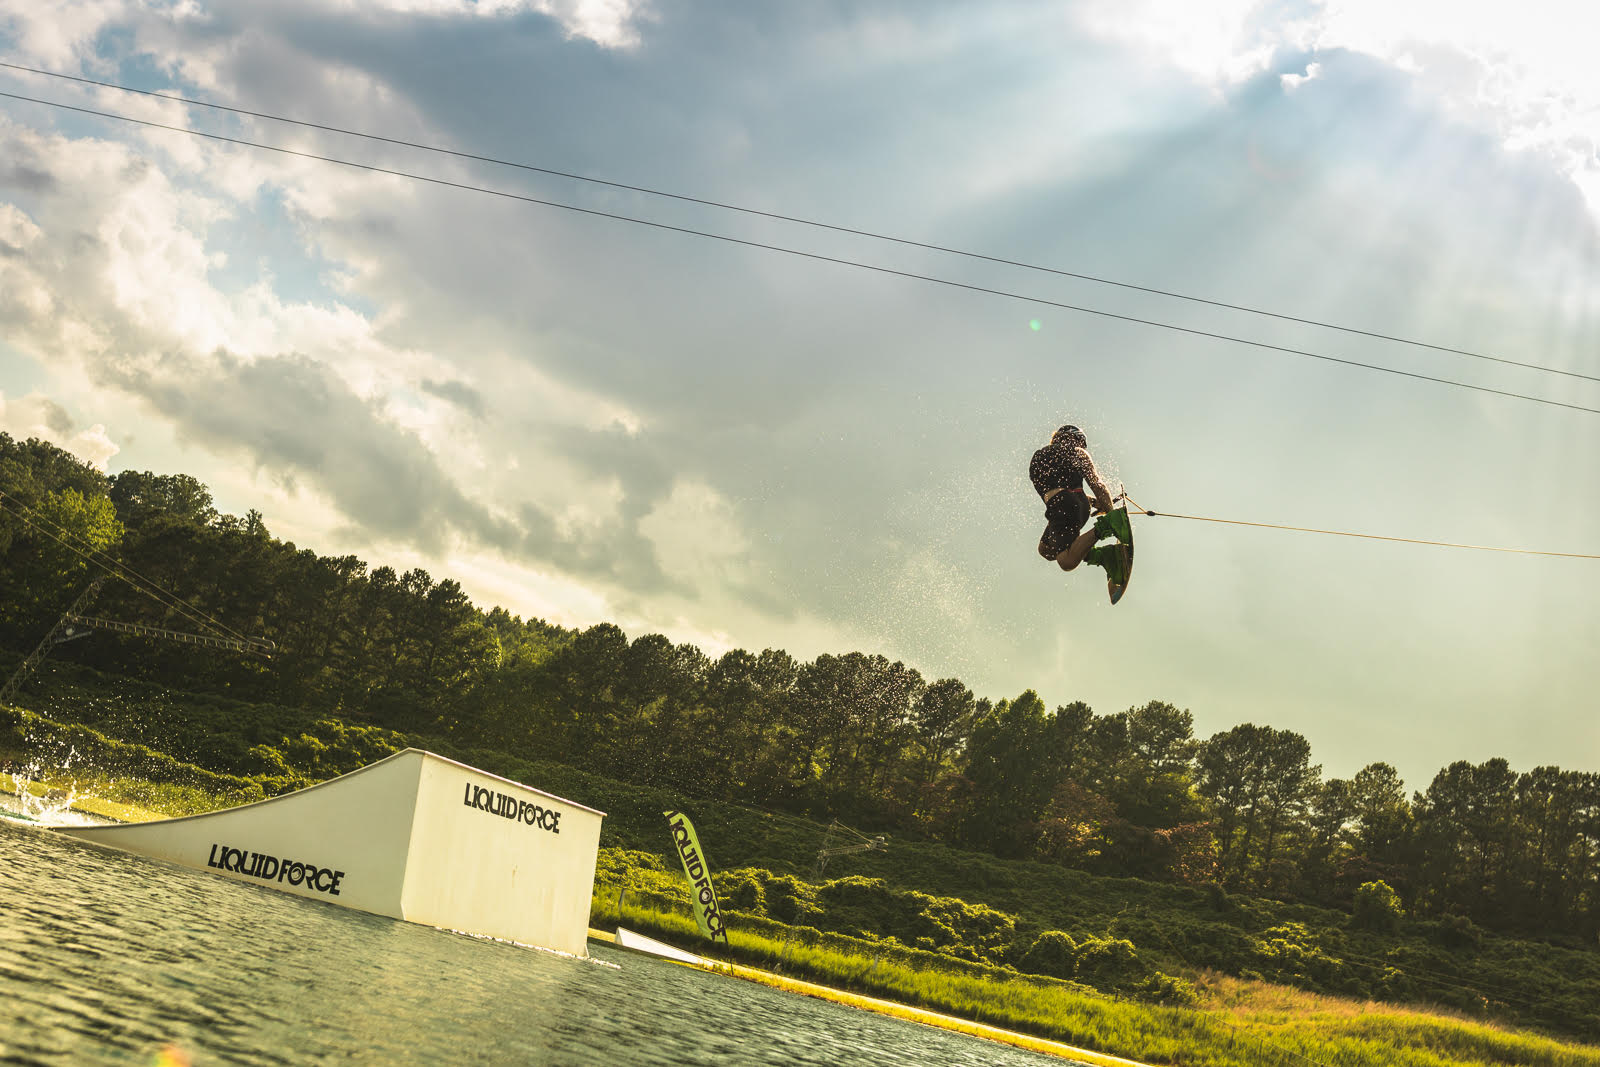 Free For All Day at Terminus Wake Park